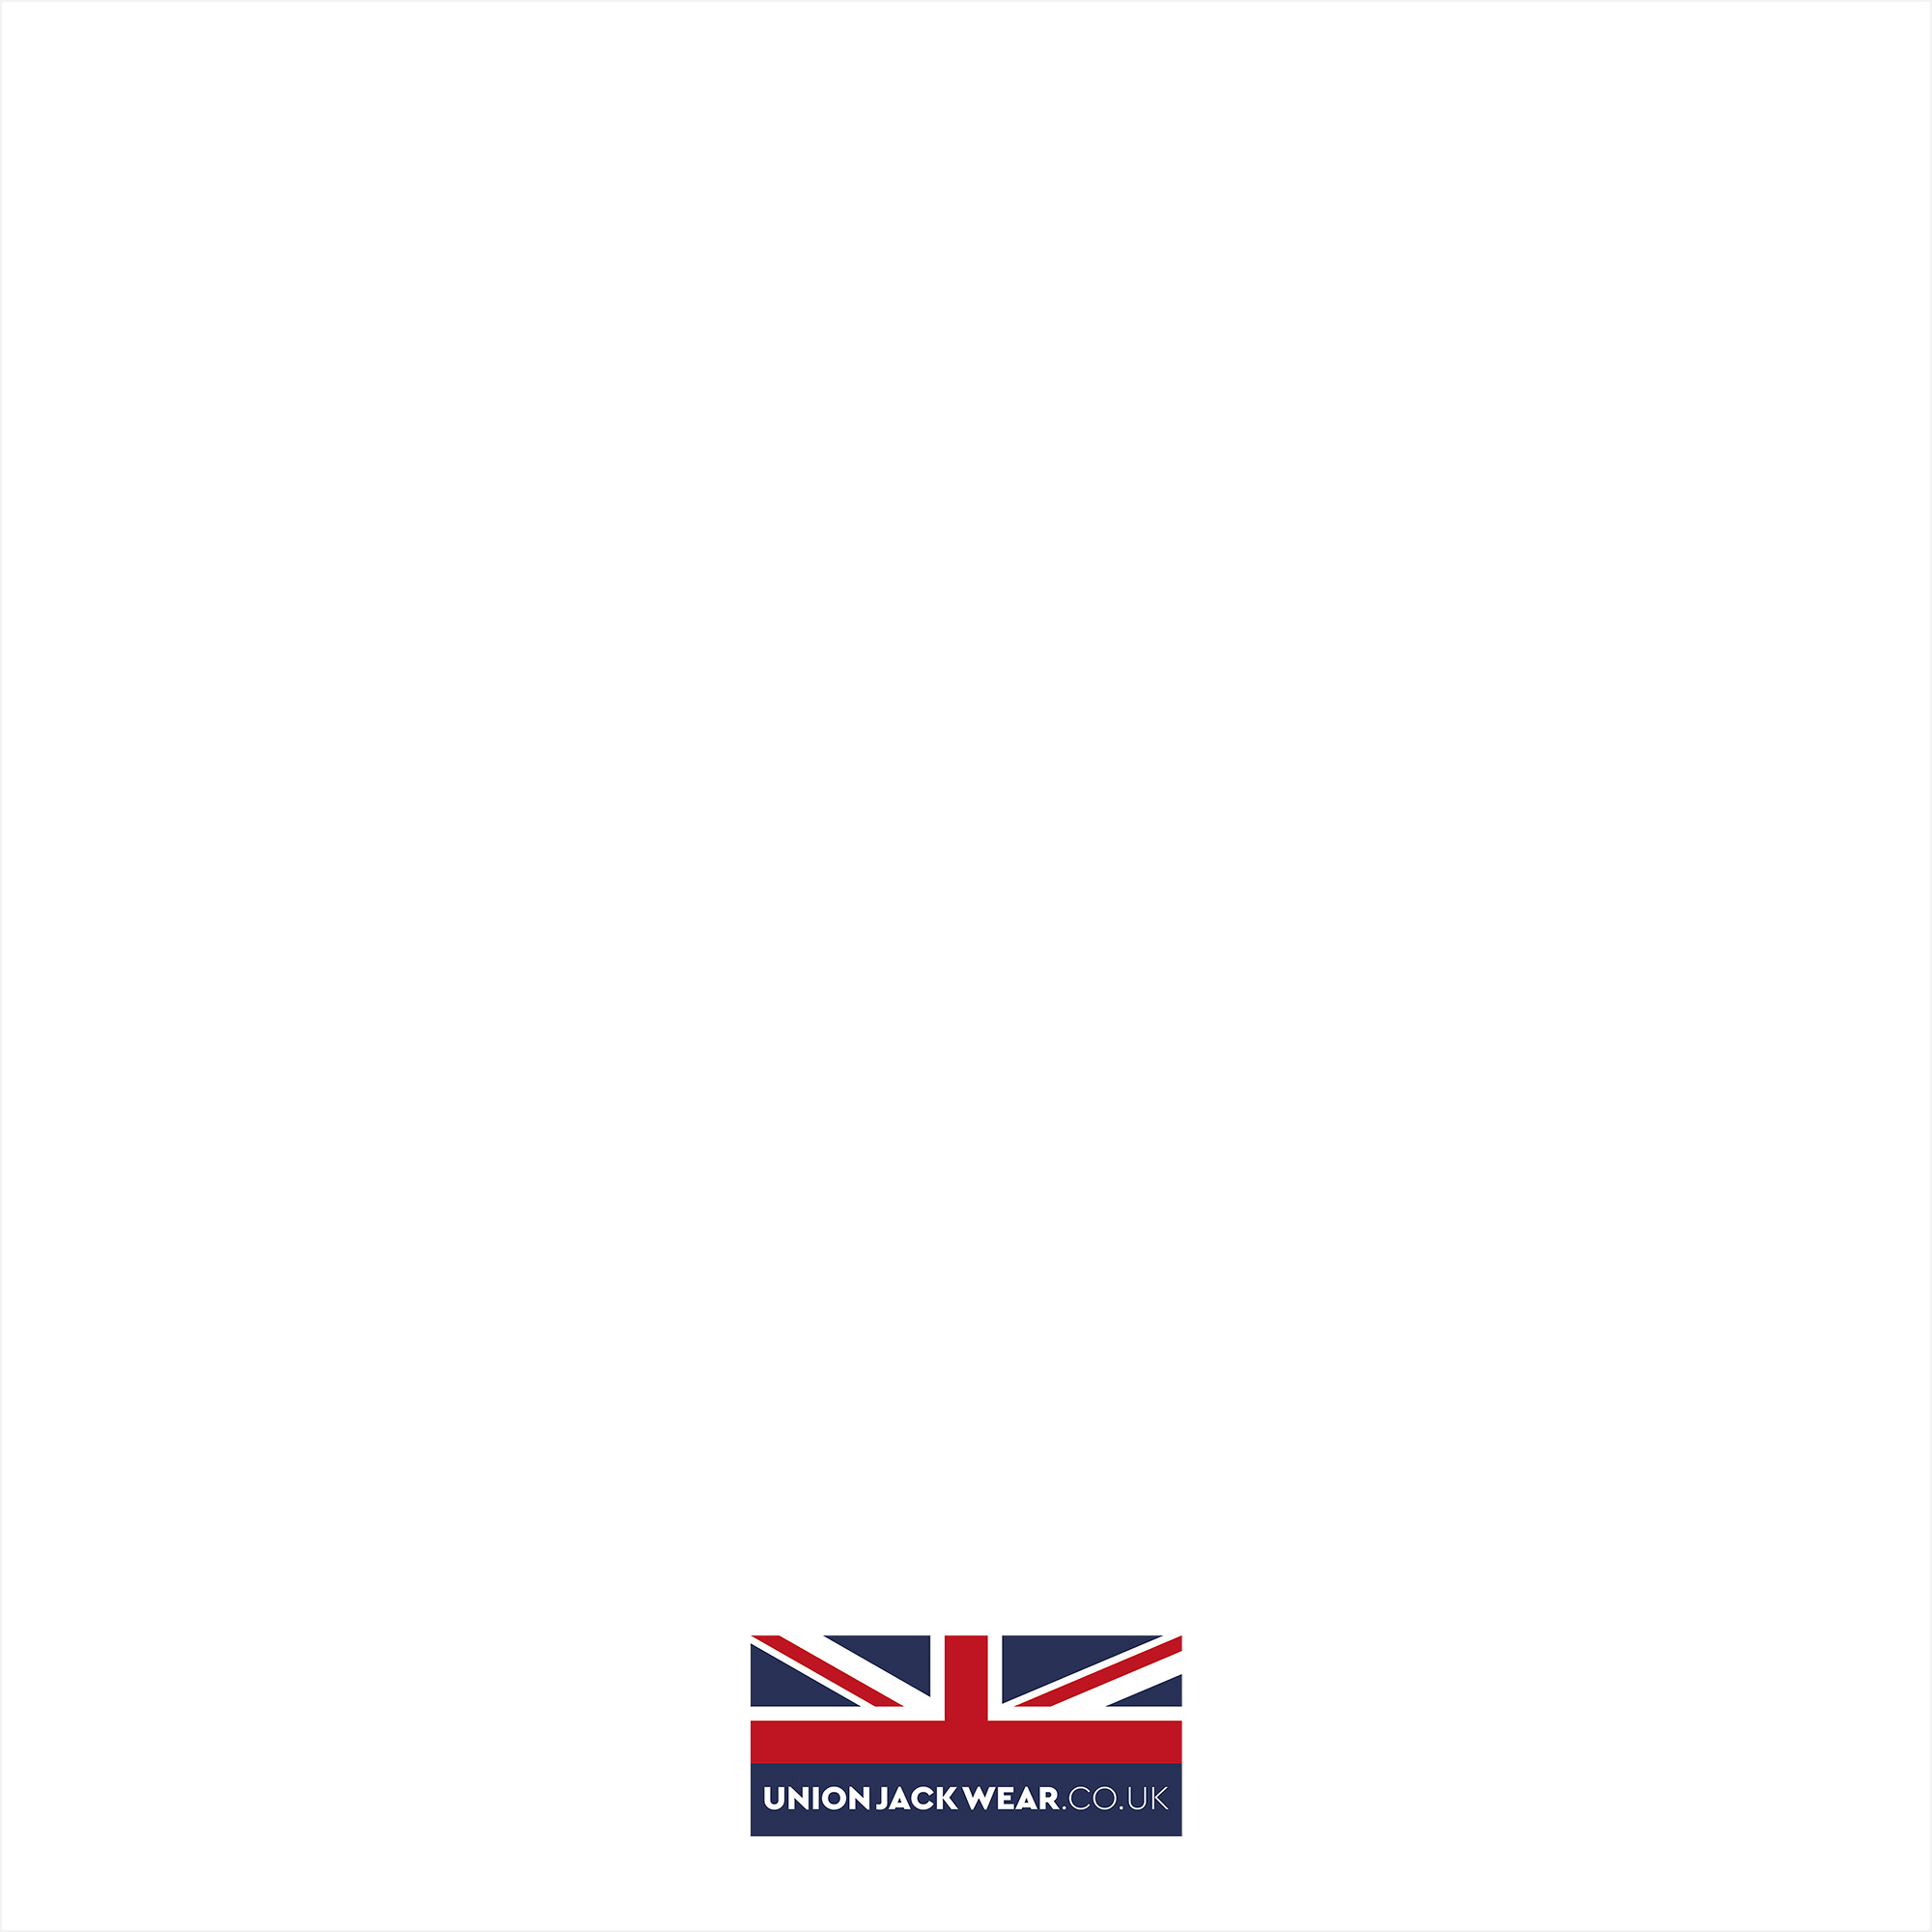 Union Jack Wear RAF Blue Ensign Hand Flag 2ft